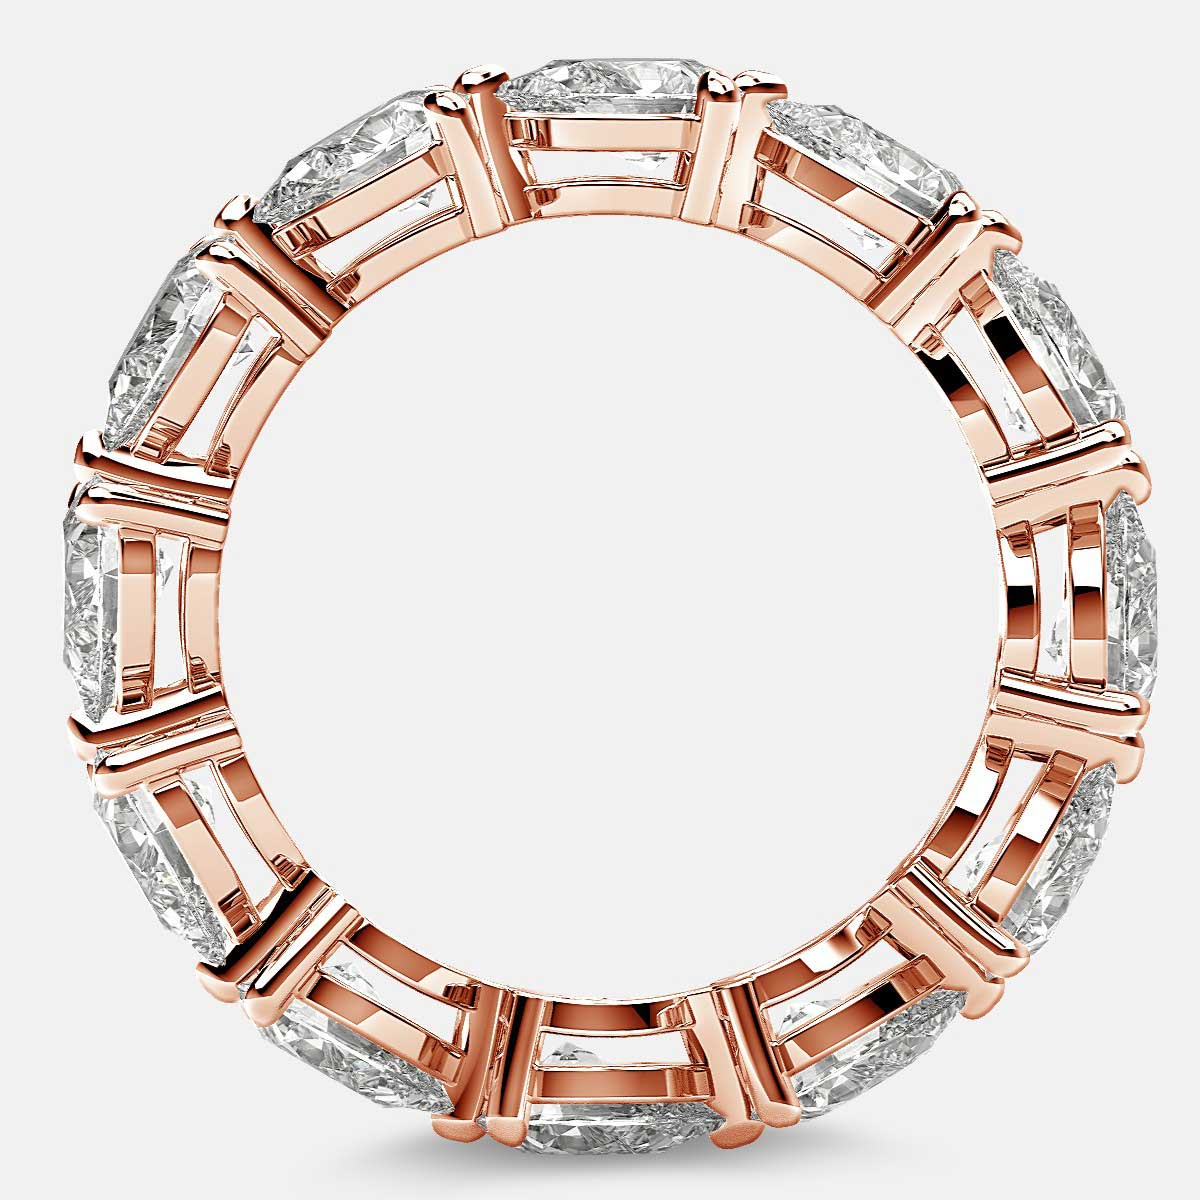 Classic Eternity Ring with Pear Shaped Diamonds in 18k Rose Gold